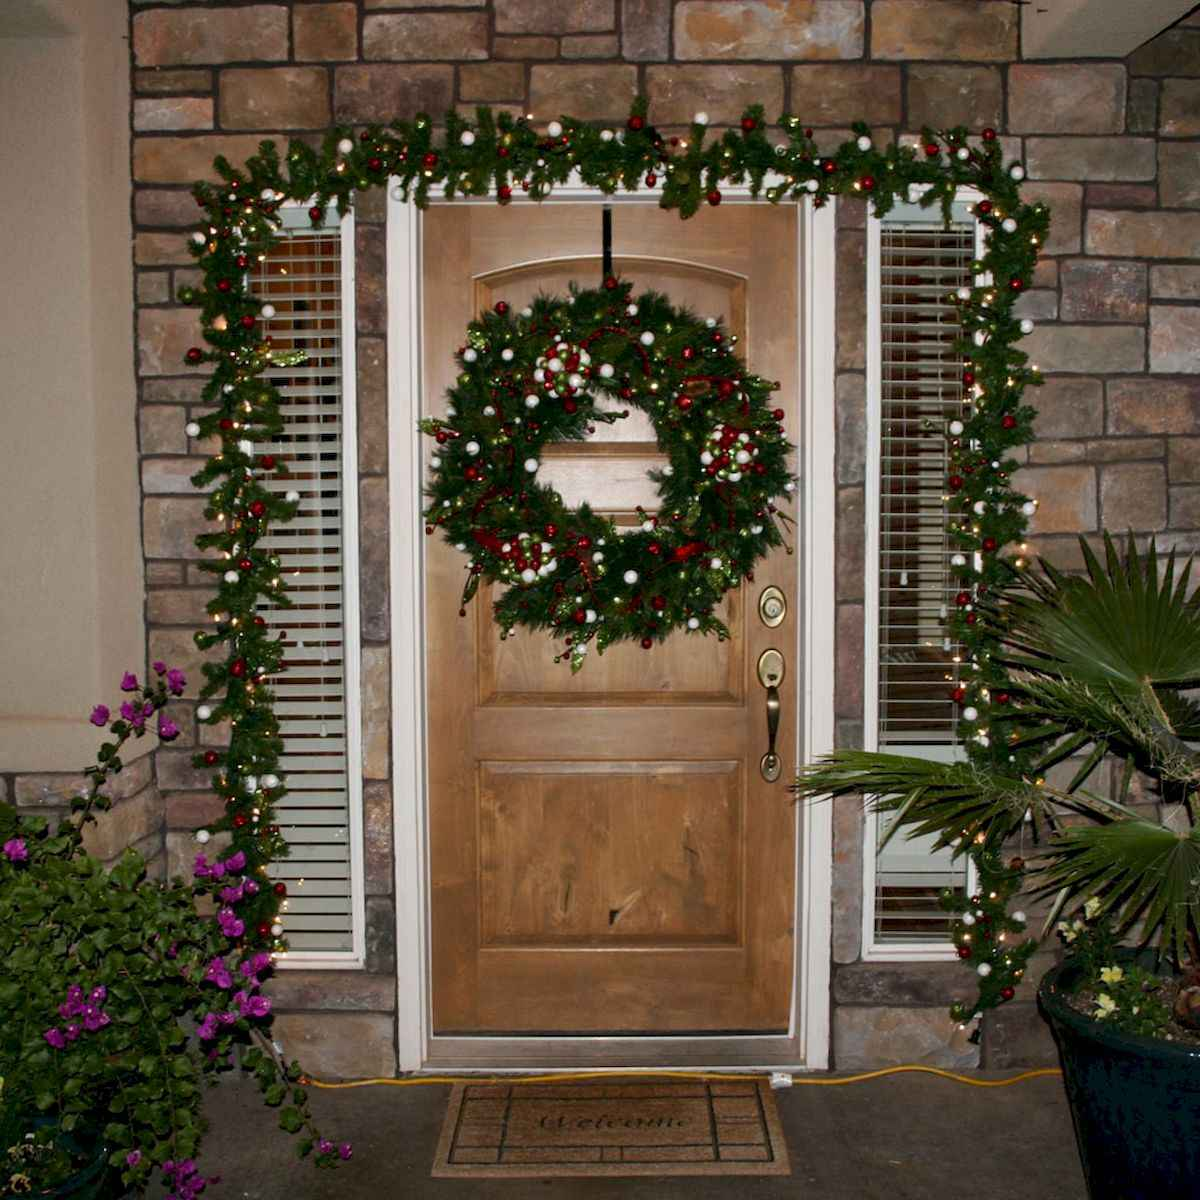 50 stunning christmas front porch decor ideas and design (26)